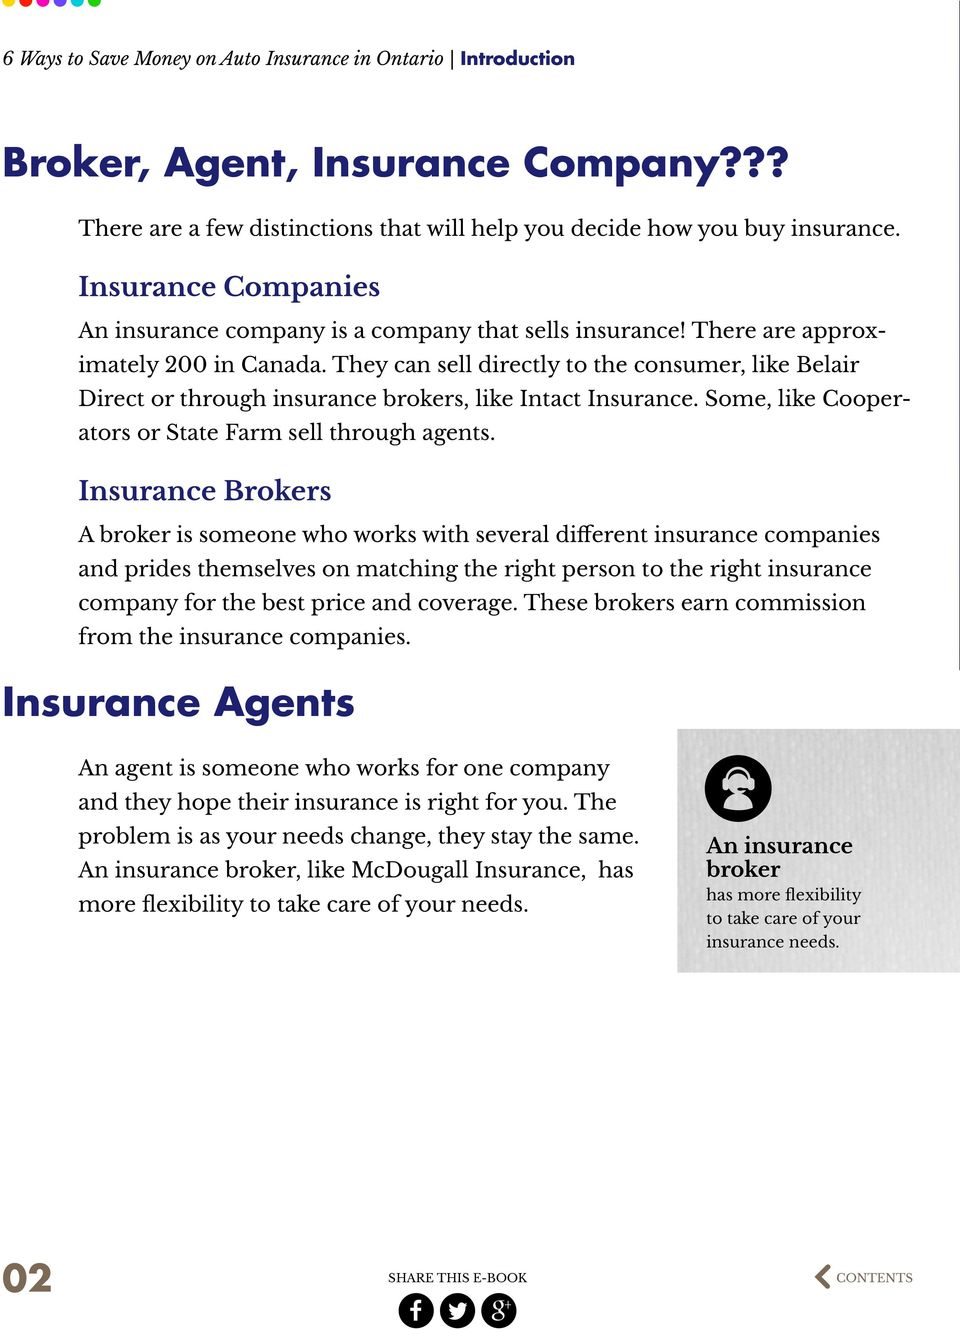 They can sell directly to the consumer, like Belair Direct or through insurance brokers, like Intact Insurance. Some, like Cooperators or State Farm sell through agents.